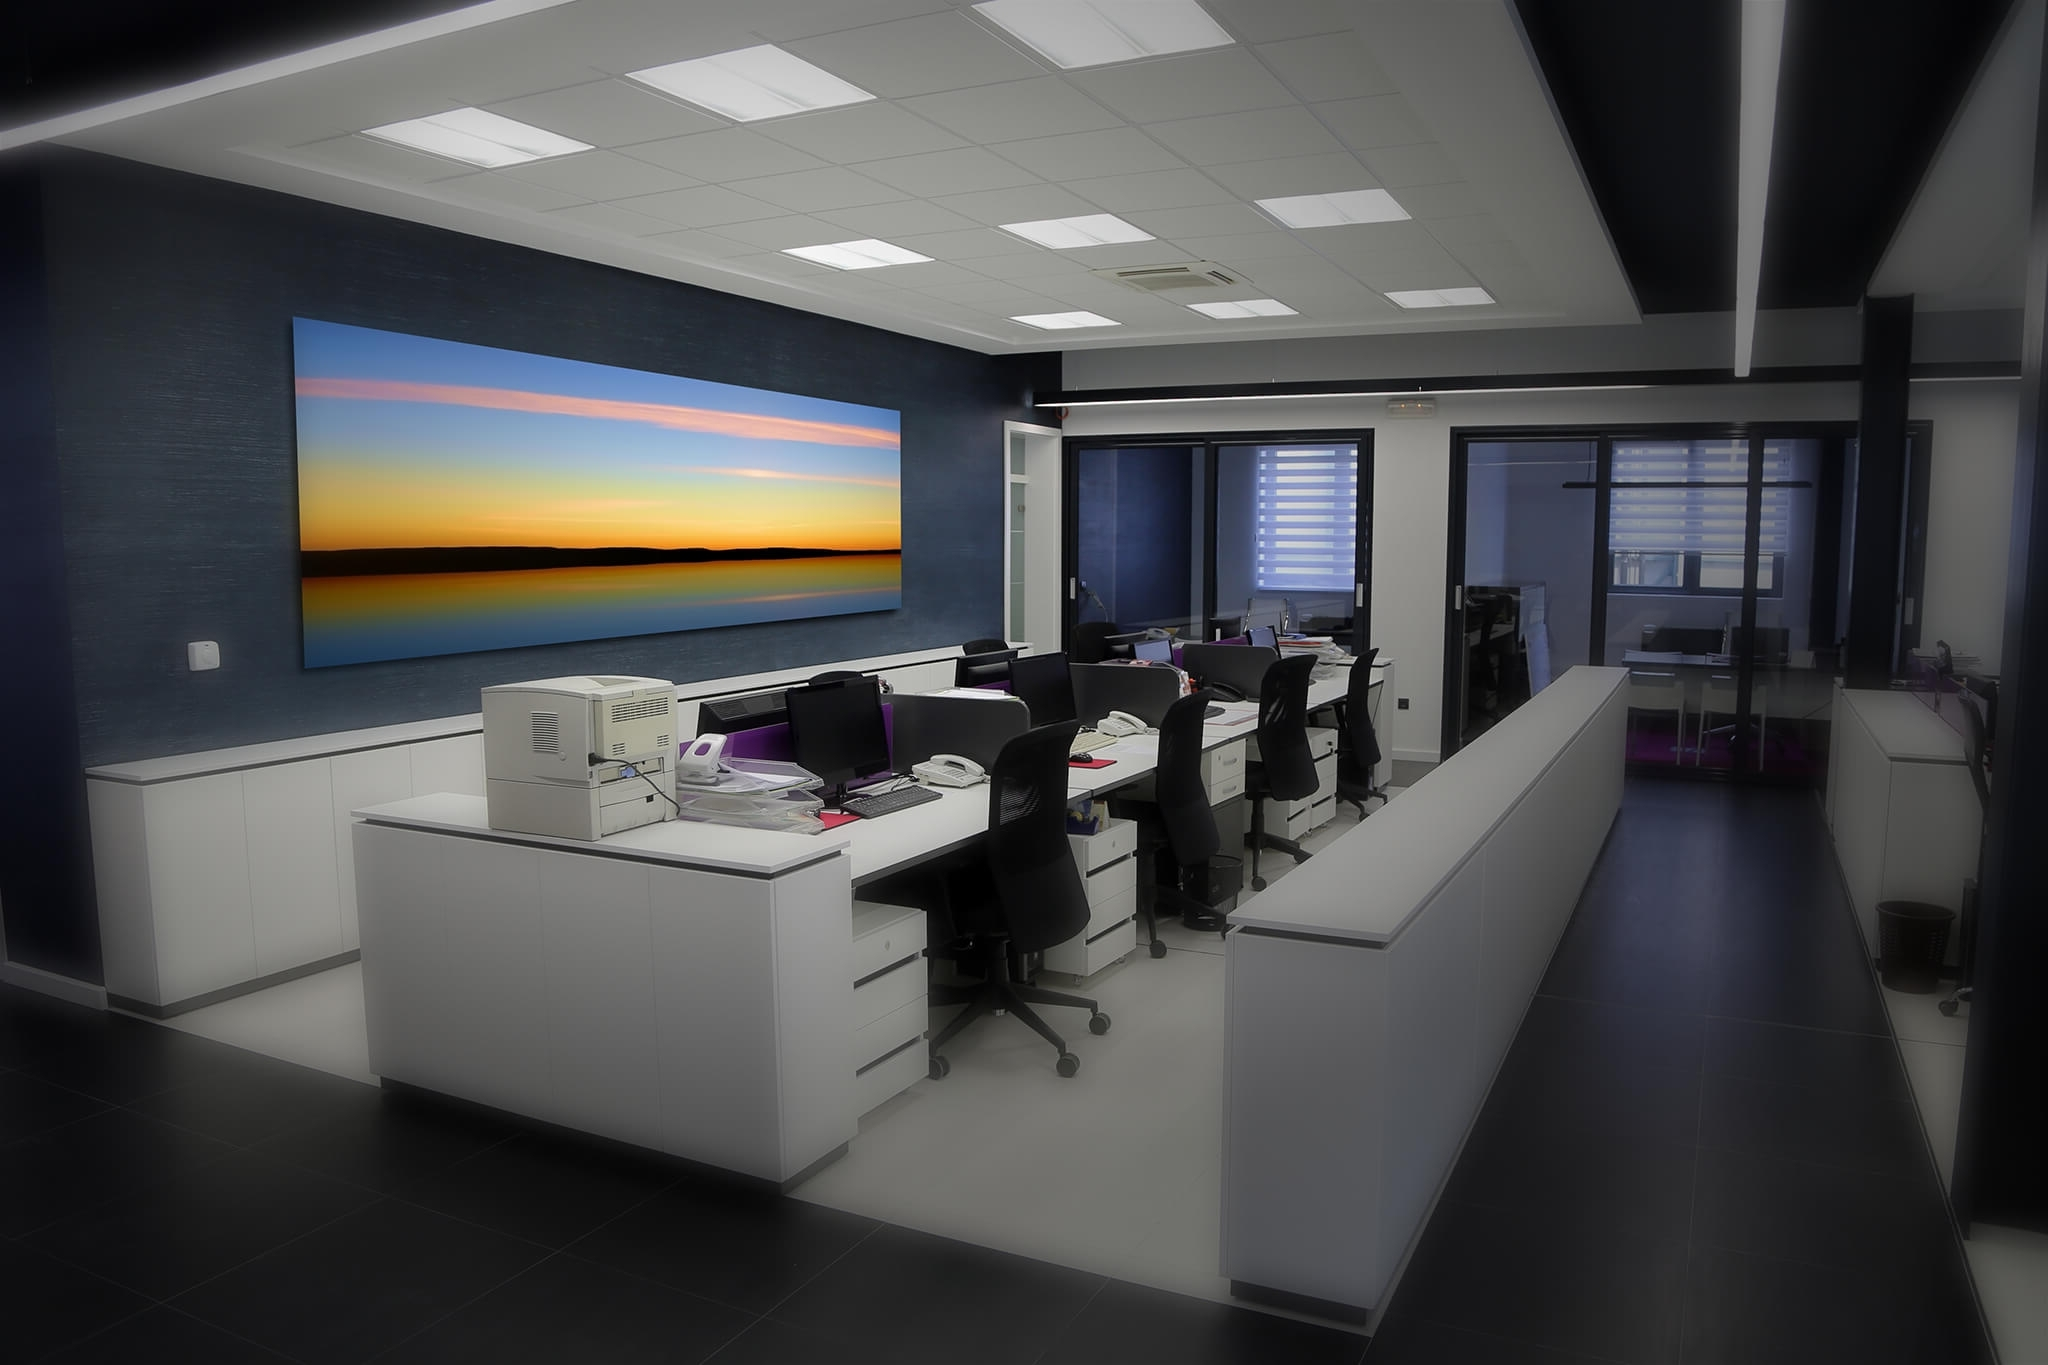 Recent Wall Art For Offices Regarding Inspirational Modern Office Wall Art  Architecture Nice (Gallery 8